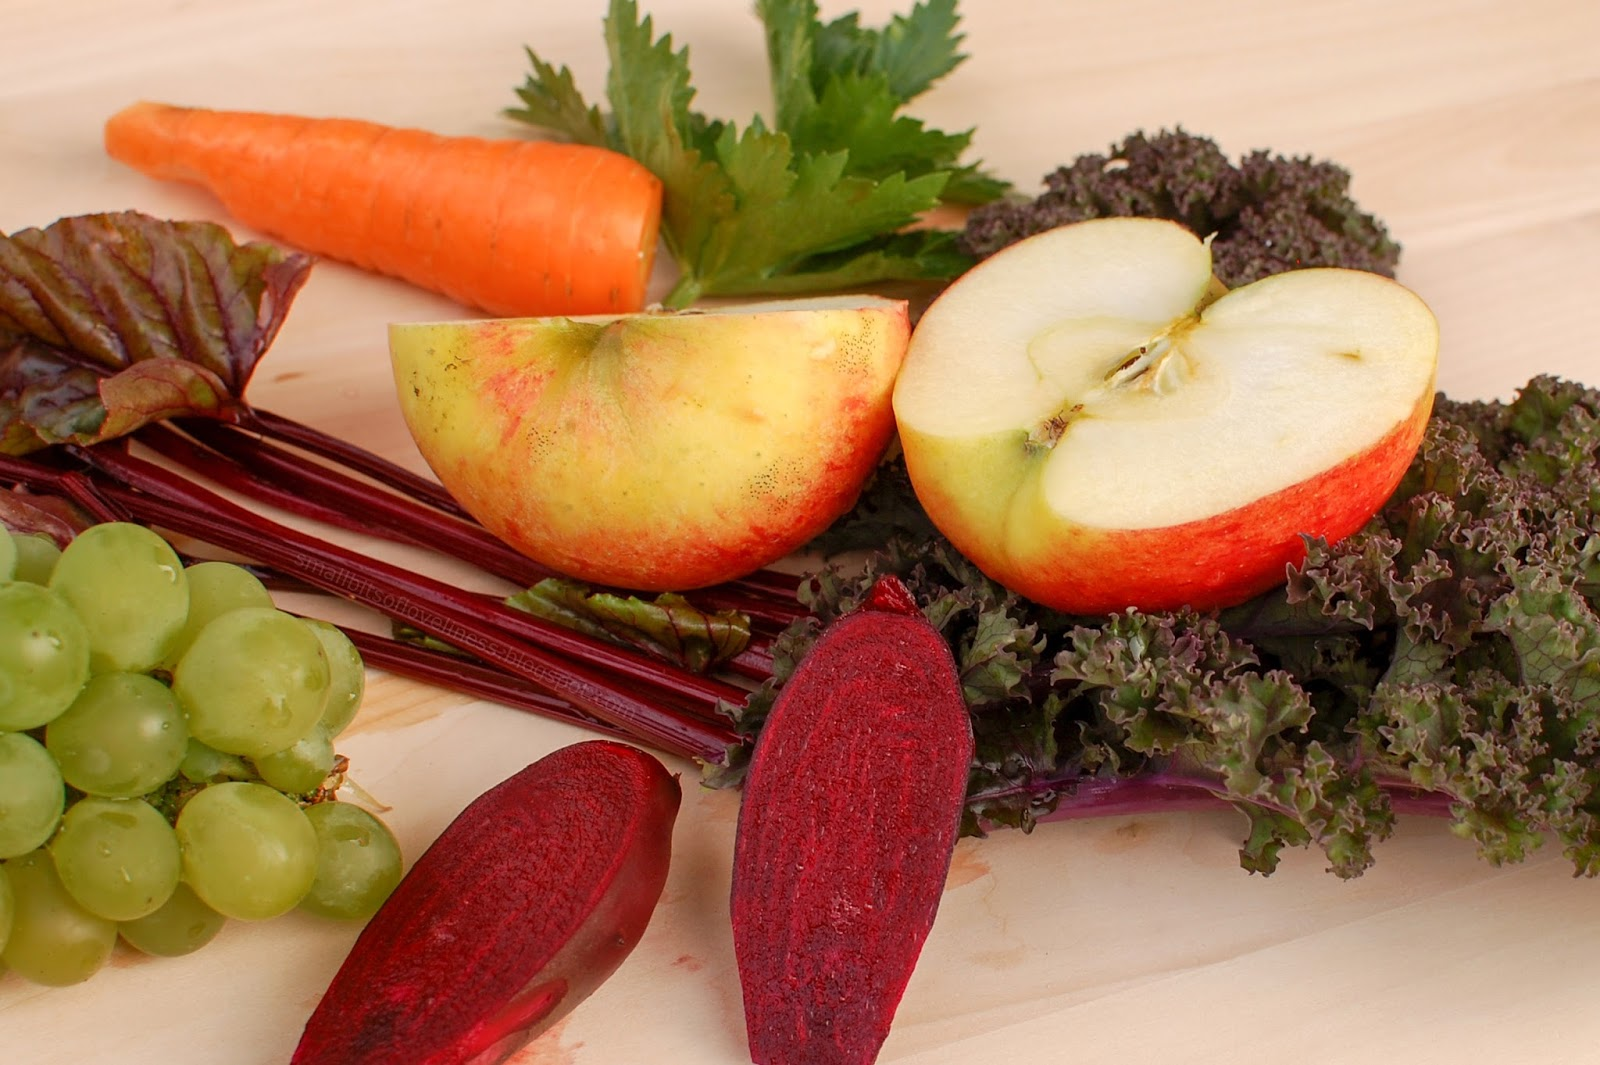 Autumn Smoothie with apple, carrot, beet, grapes, kale, celery